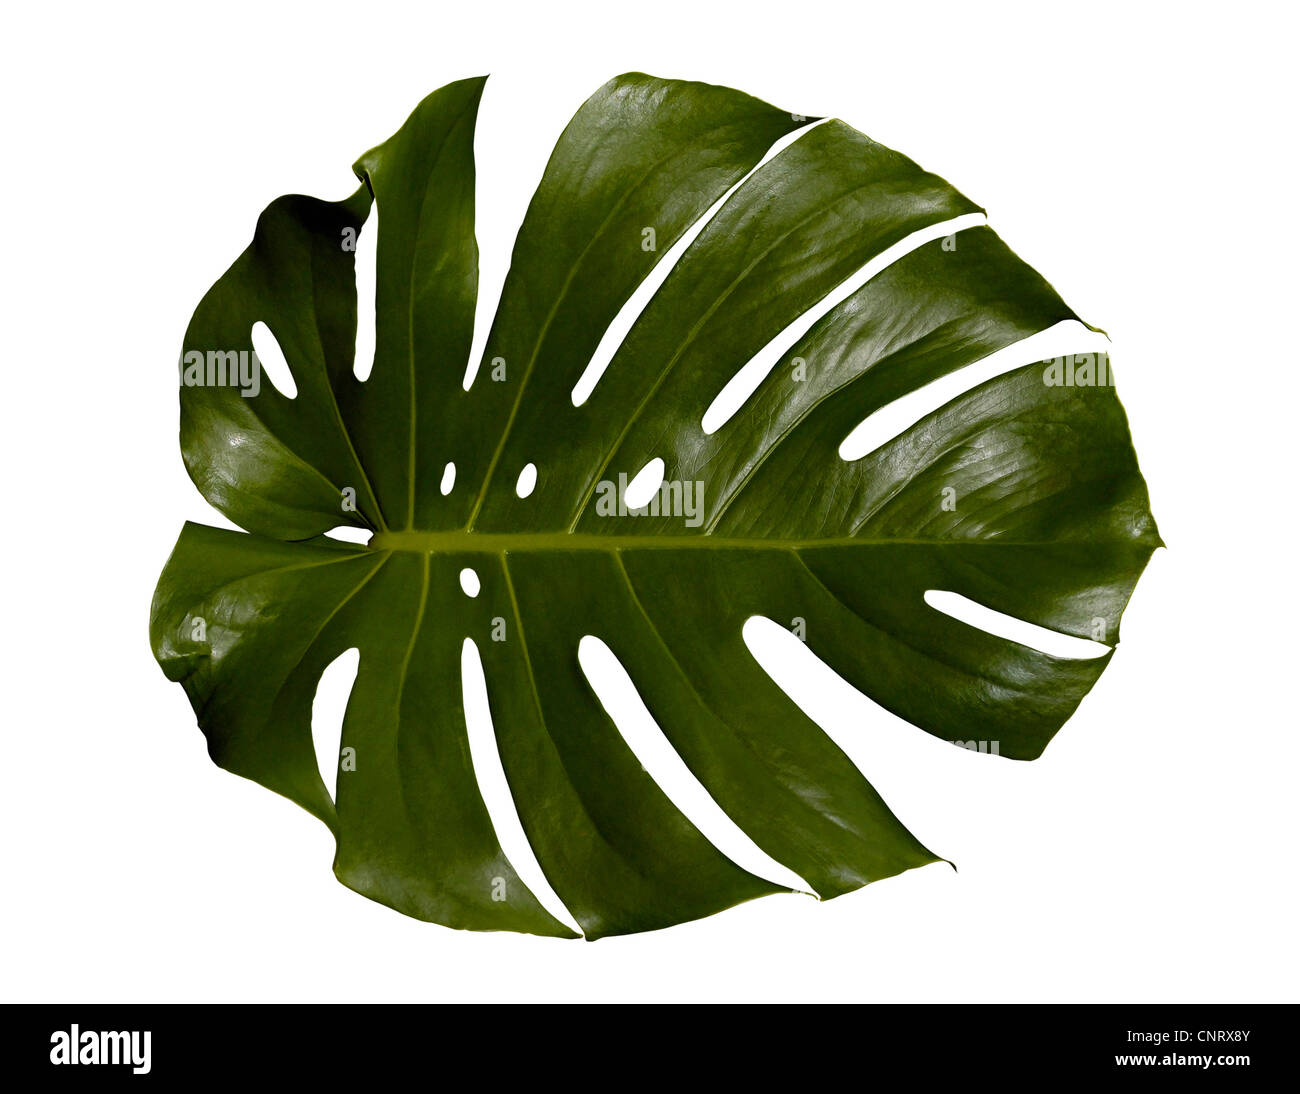 swiss cheese plant and indoor stock photos swiss cheese plant and indoor stock images alamy. Black Bedroom Furniture Sets. Home Design Ideas